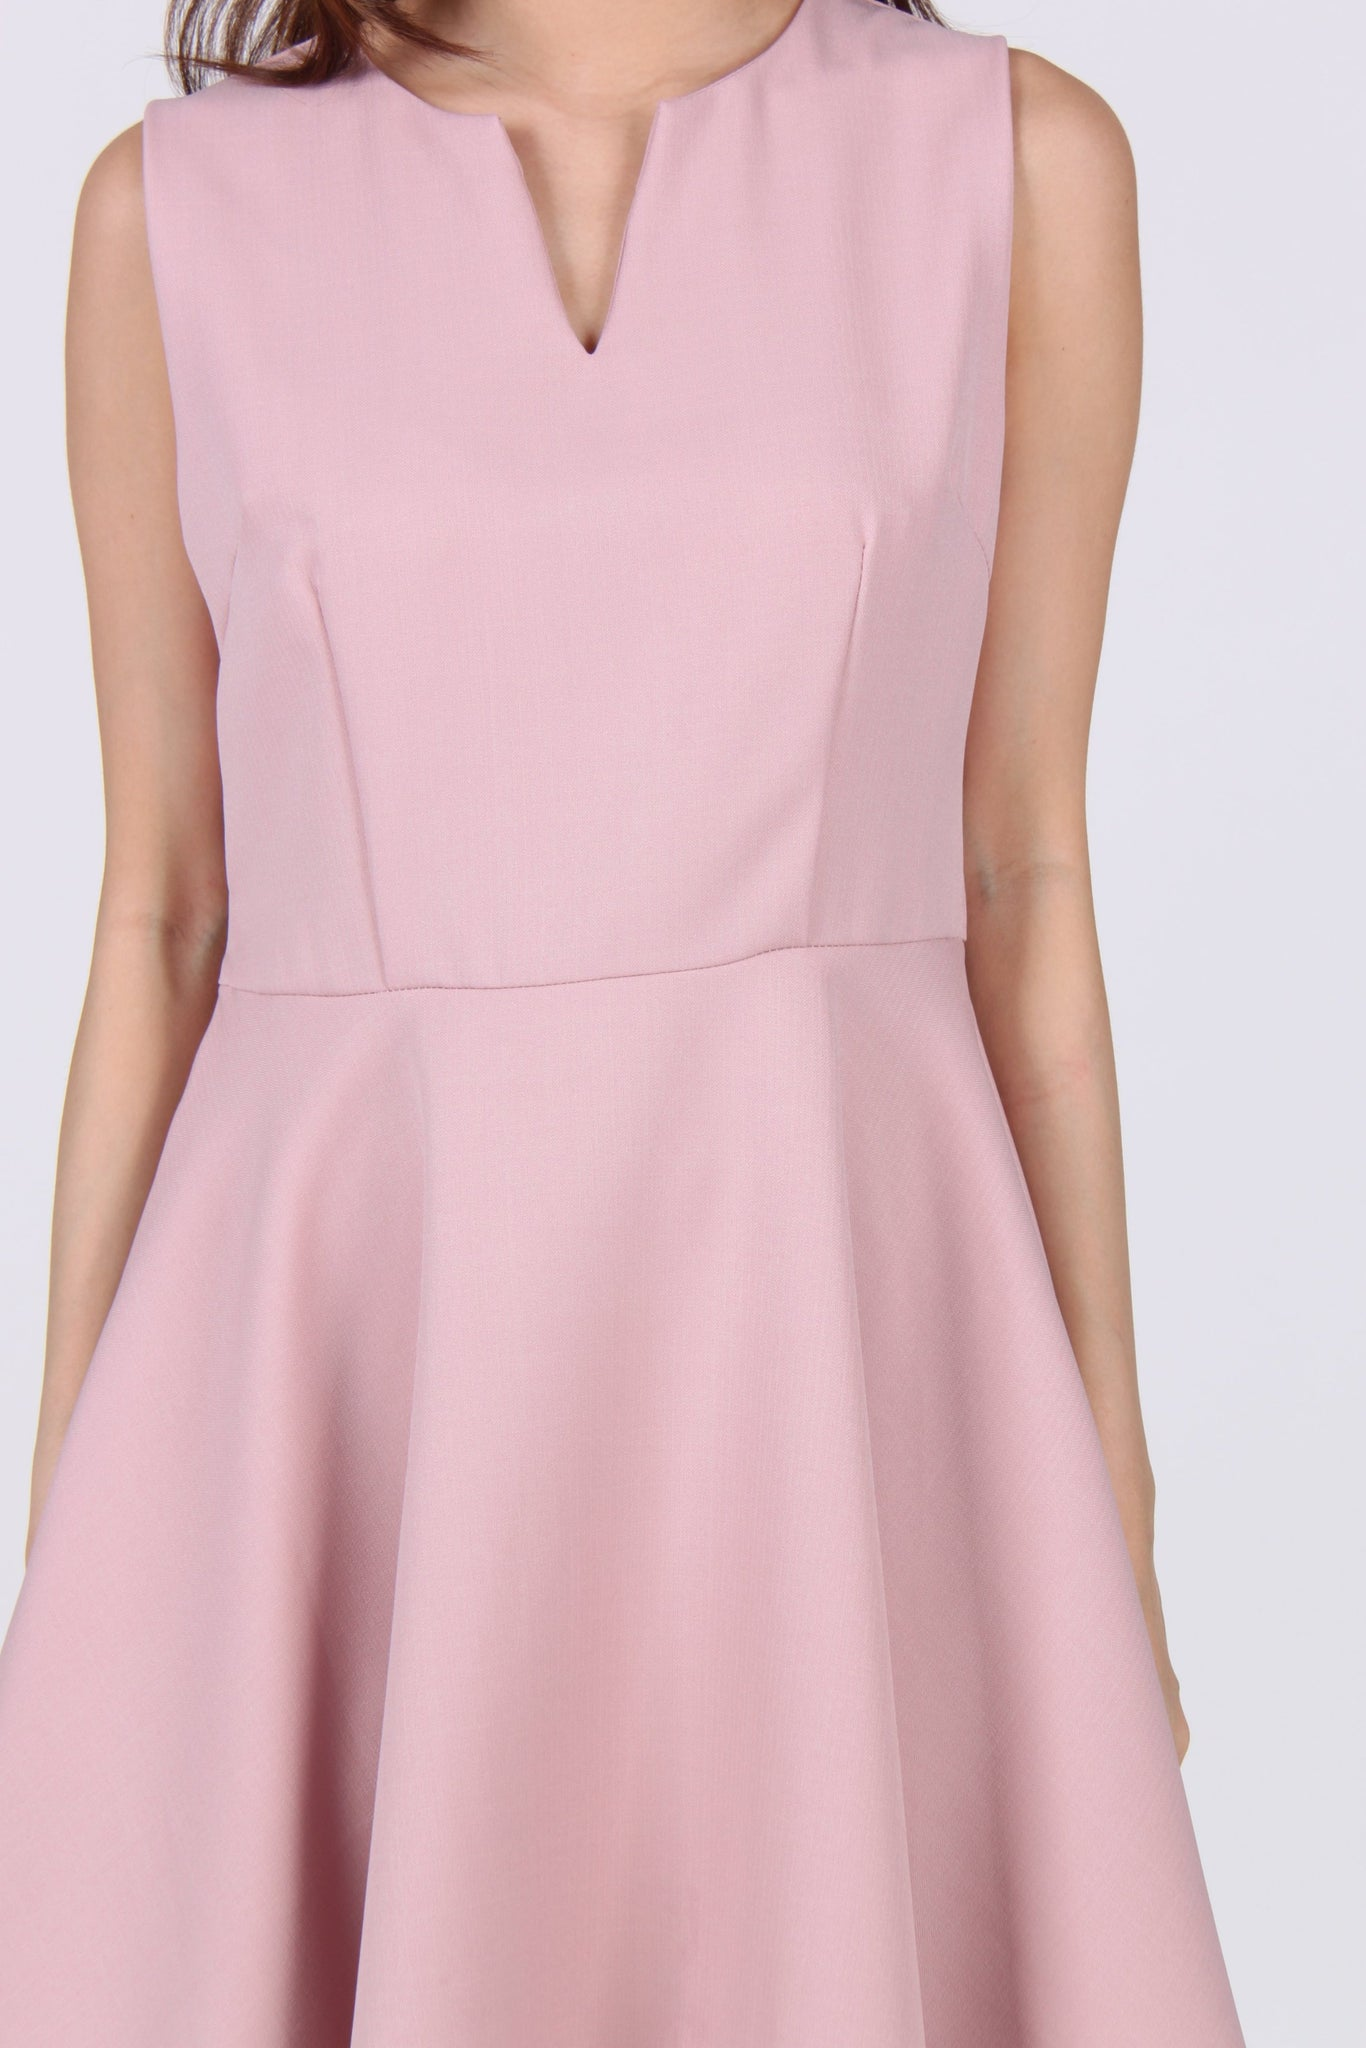 V Collar Sleeveless Skater Dress in Pink